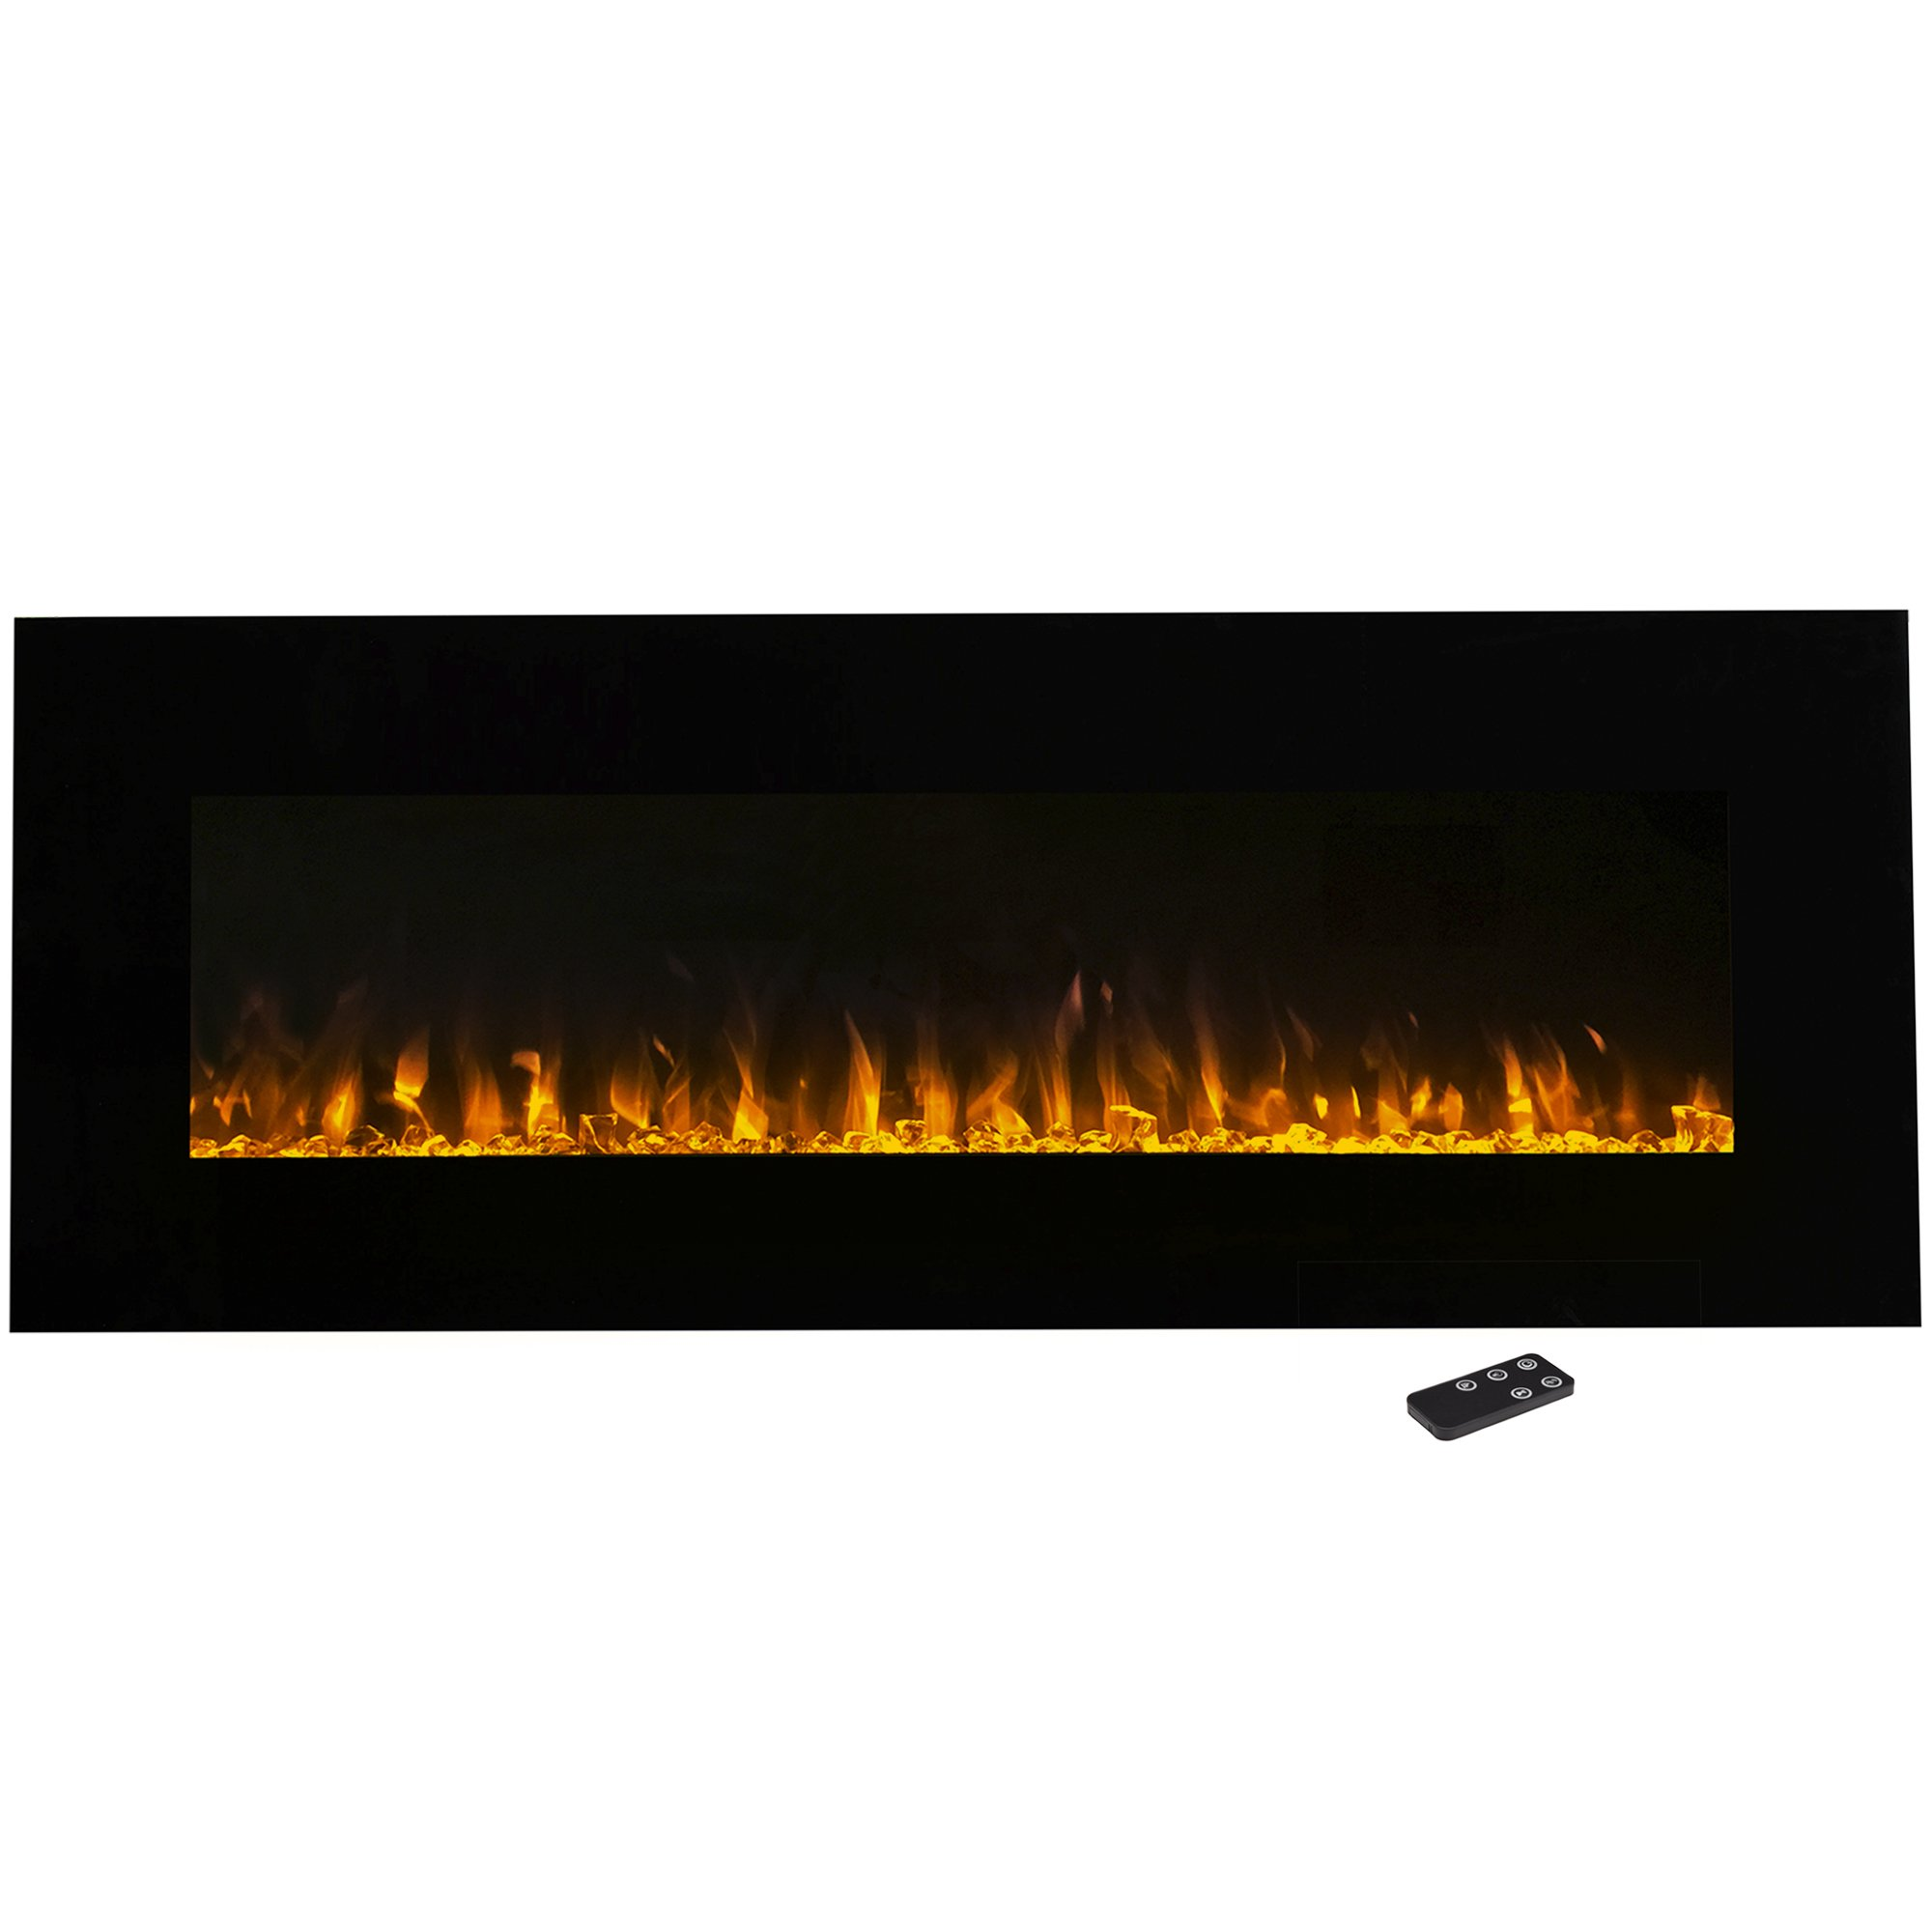 Electric Fireplace Wall Mounted, LED Fire and Ice Flame, With Remote 54 inch by Northwest by Northwest